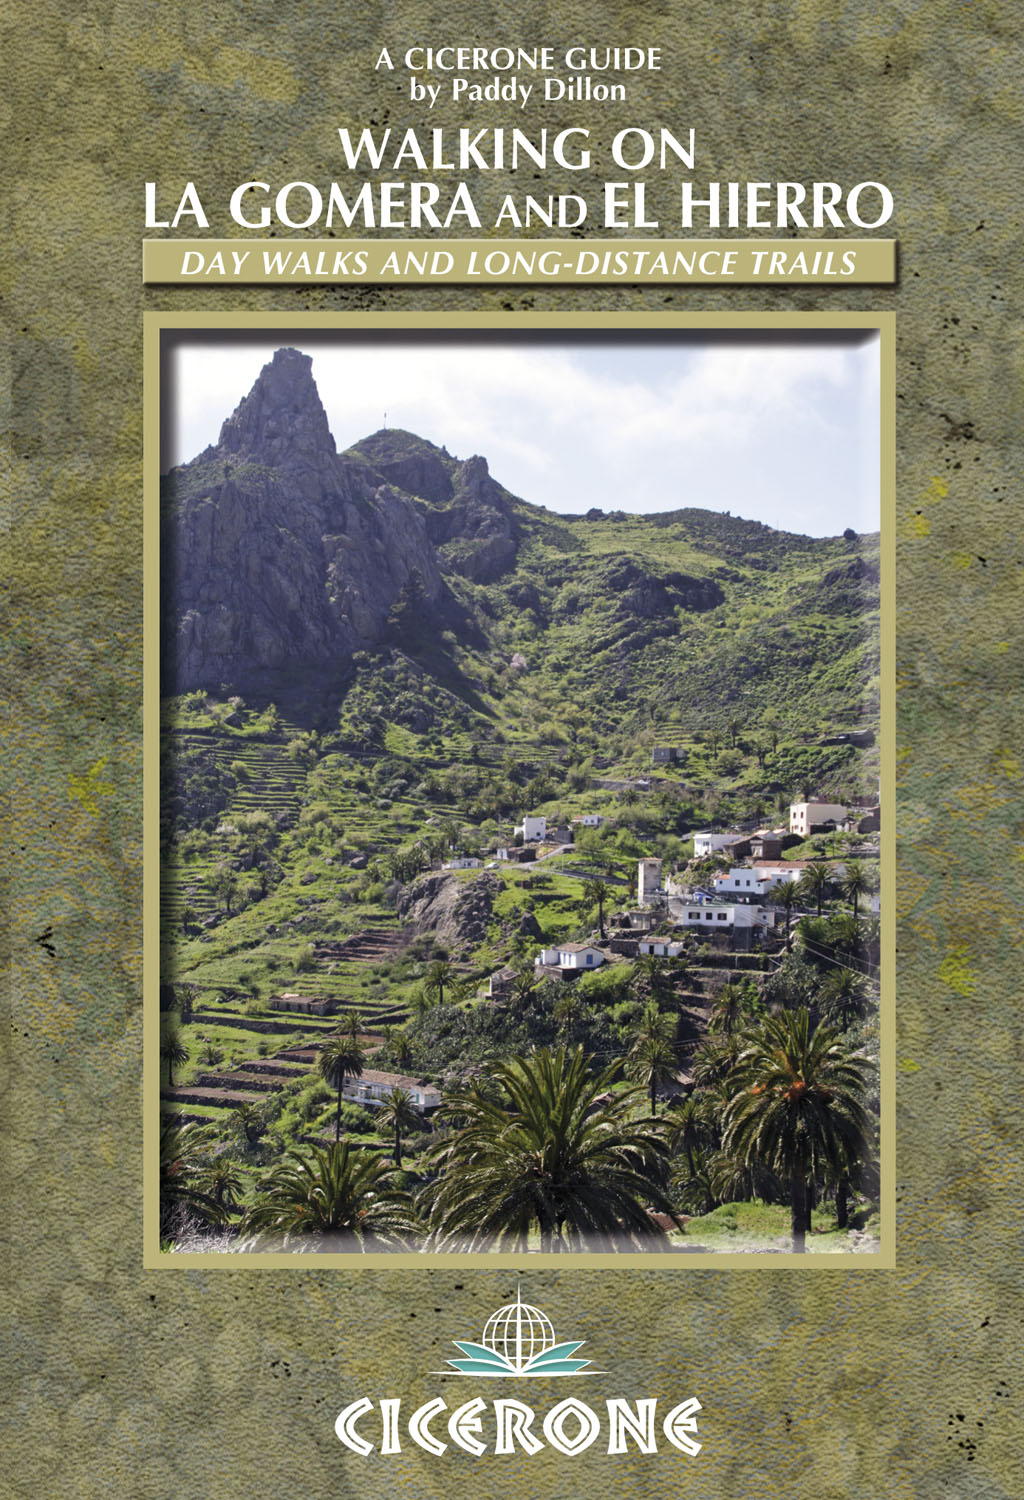 Walking on La Gomera and El Hierro